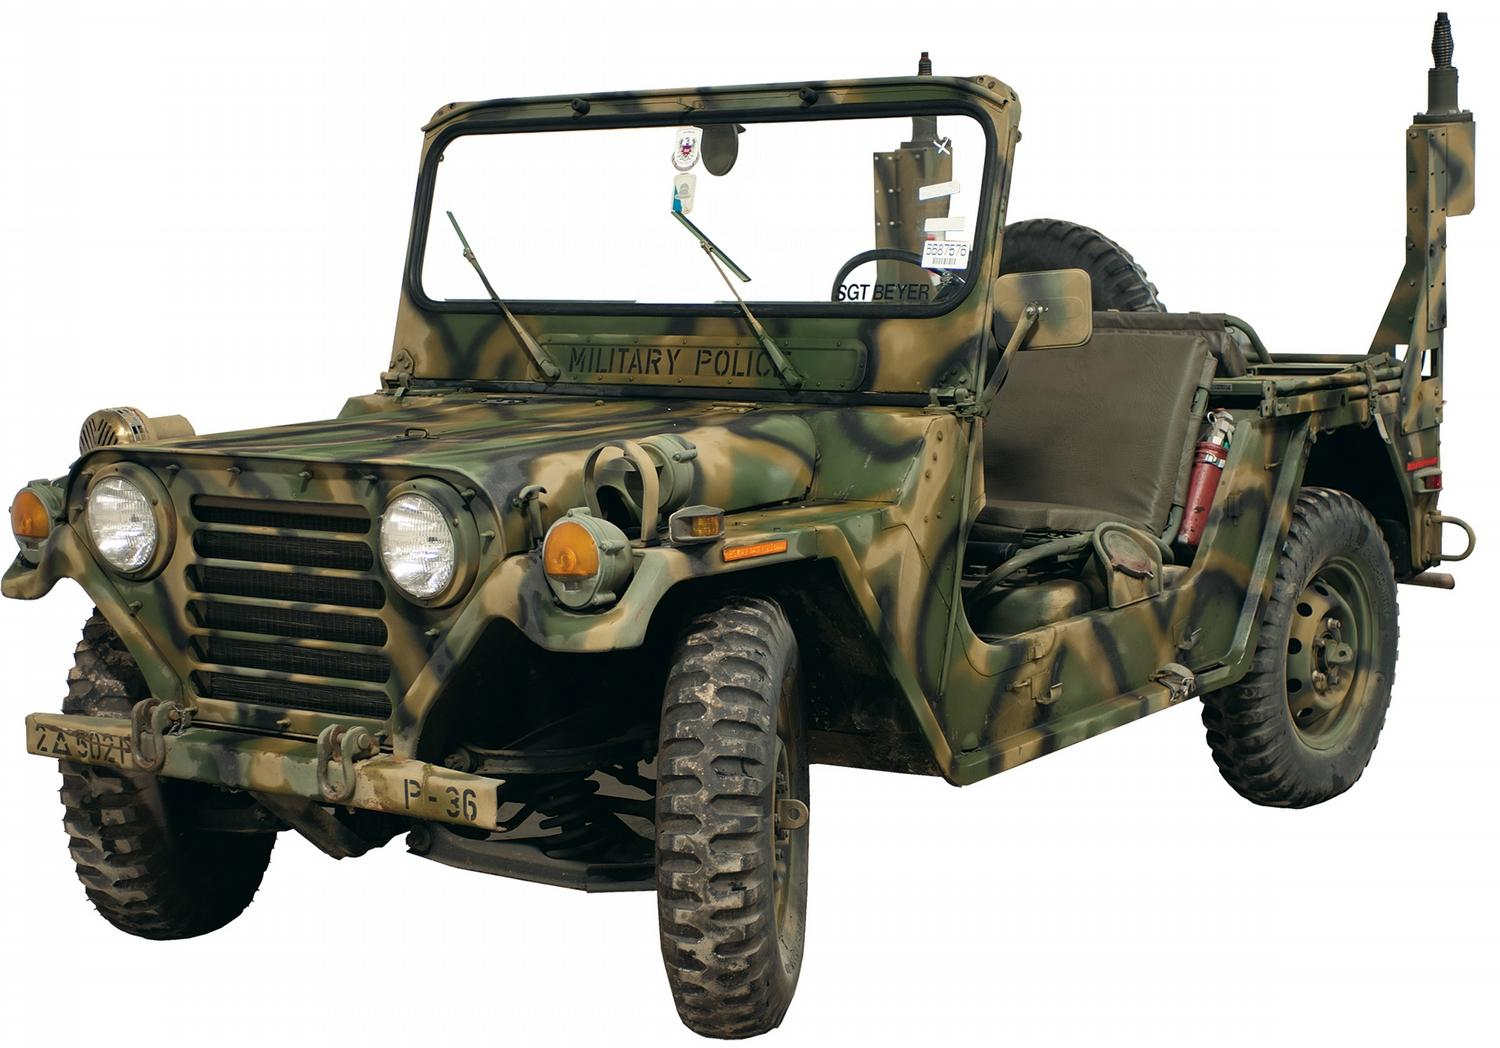 Jeep For Sale In Pakistan >> Jeep M 151 1959 - 1982 Prices in Pakistan, Pictures and Reviews | PakWheels